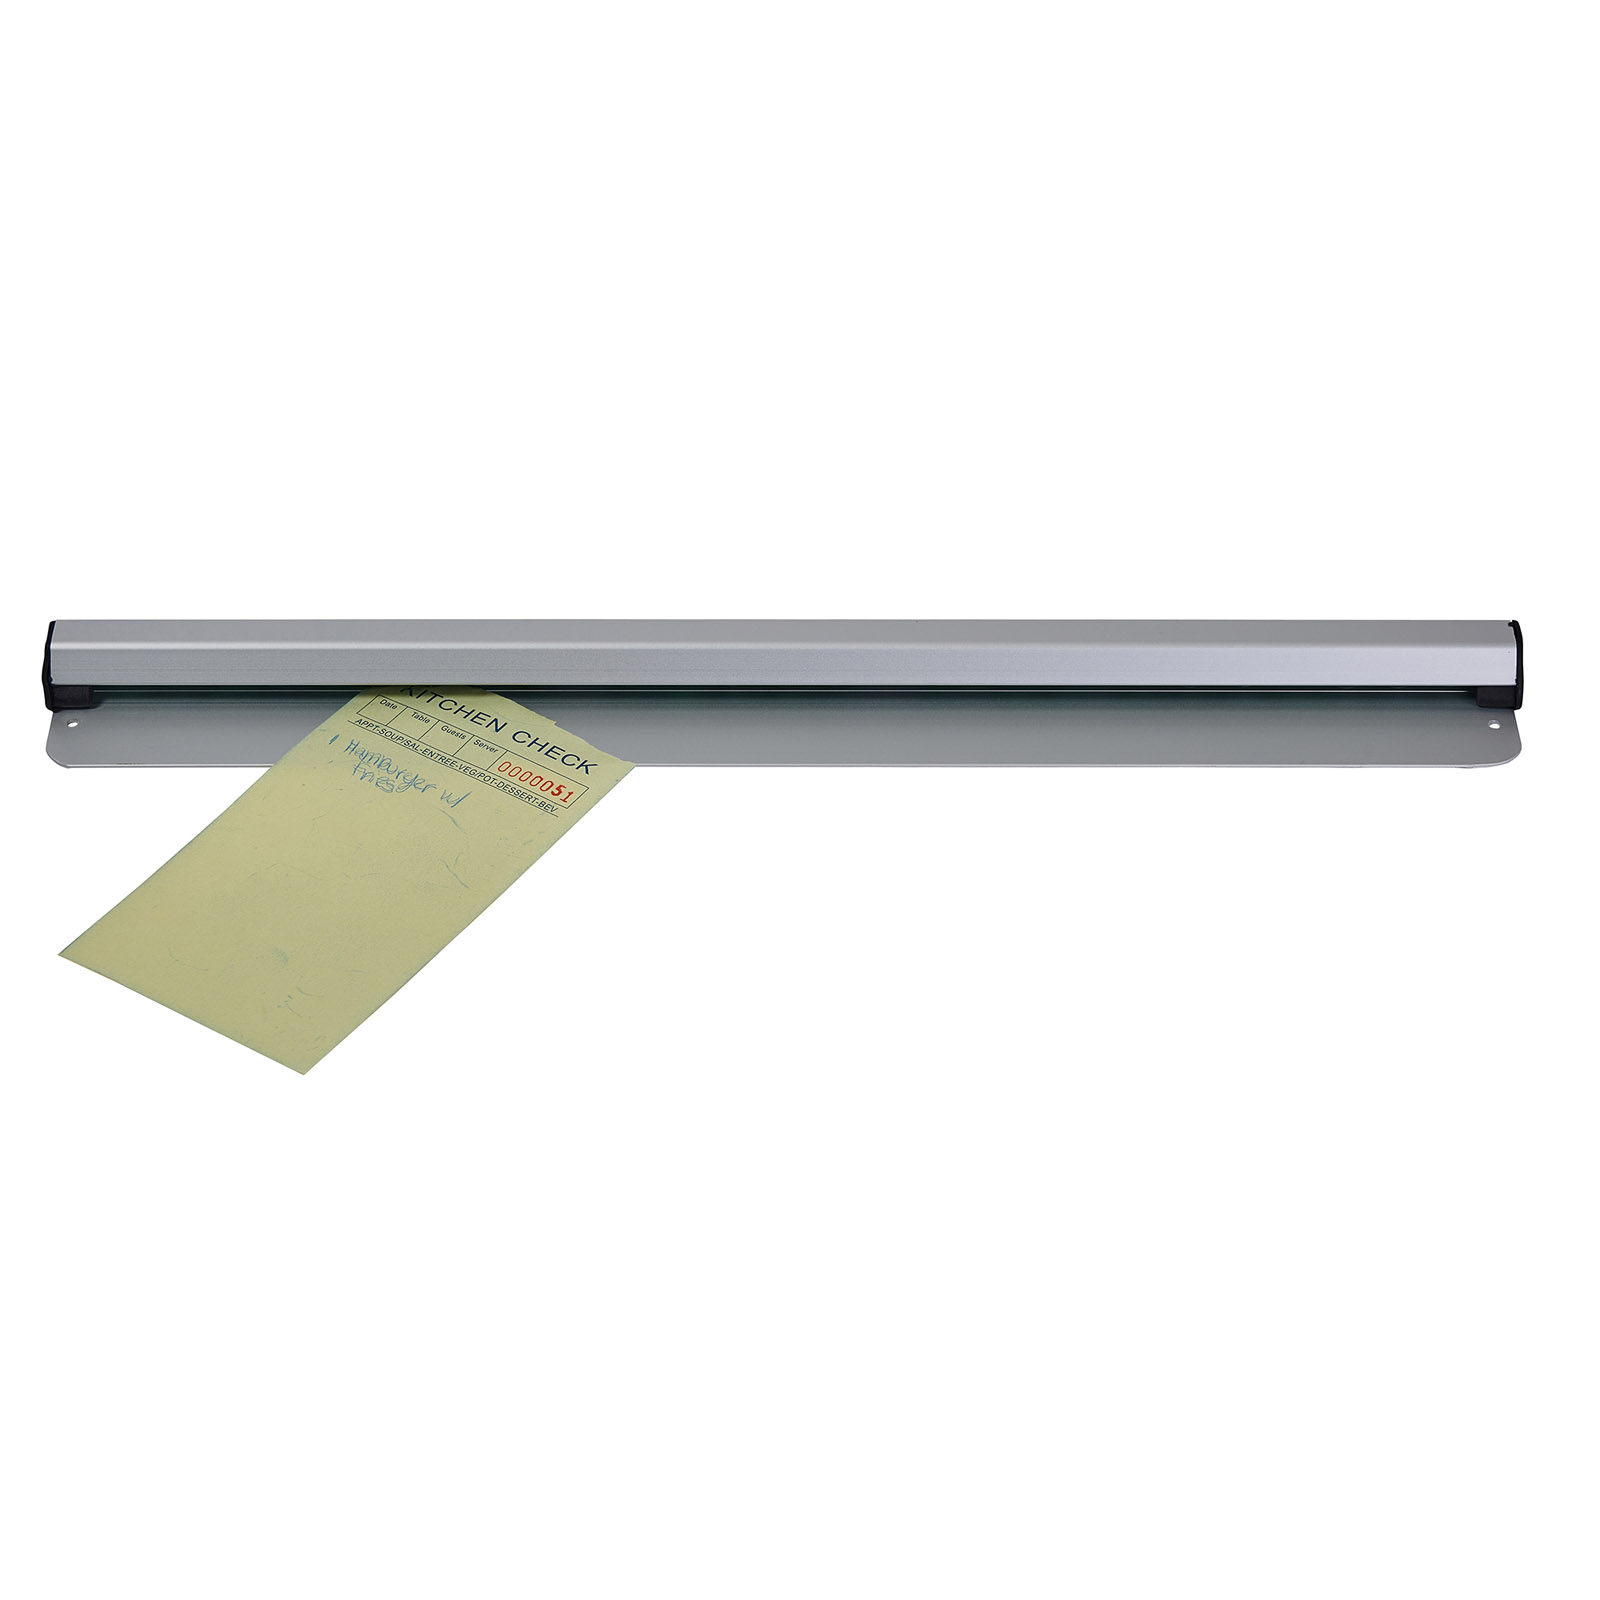 Winco ODR-18N check minder ticket holder / rail